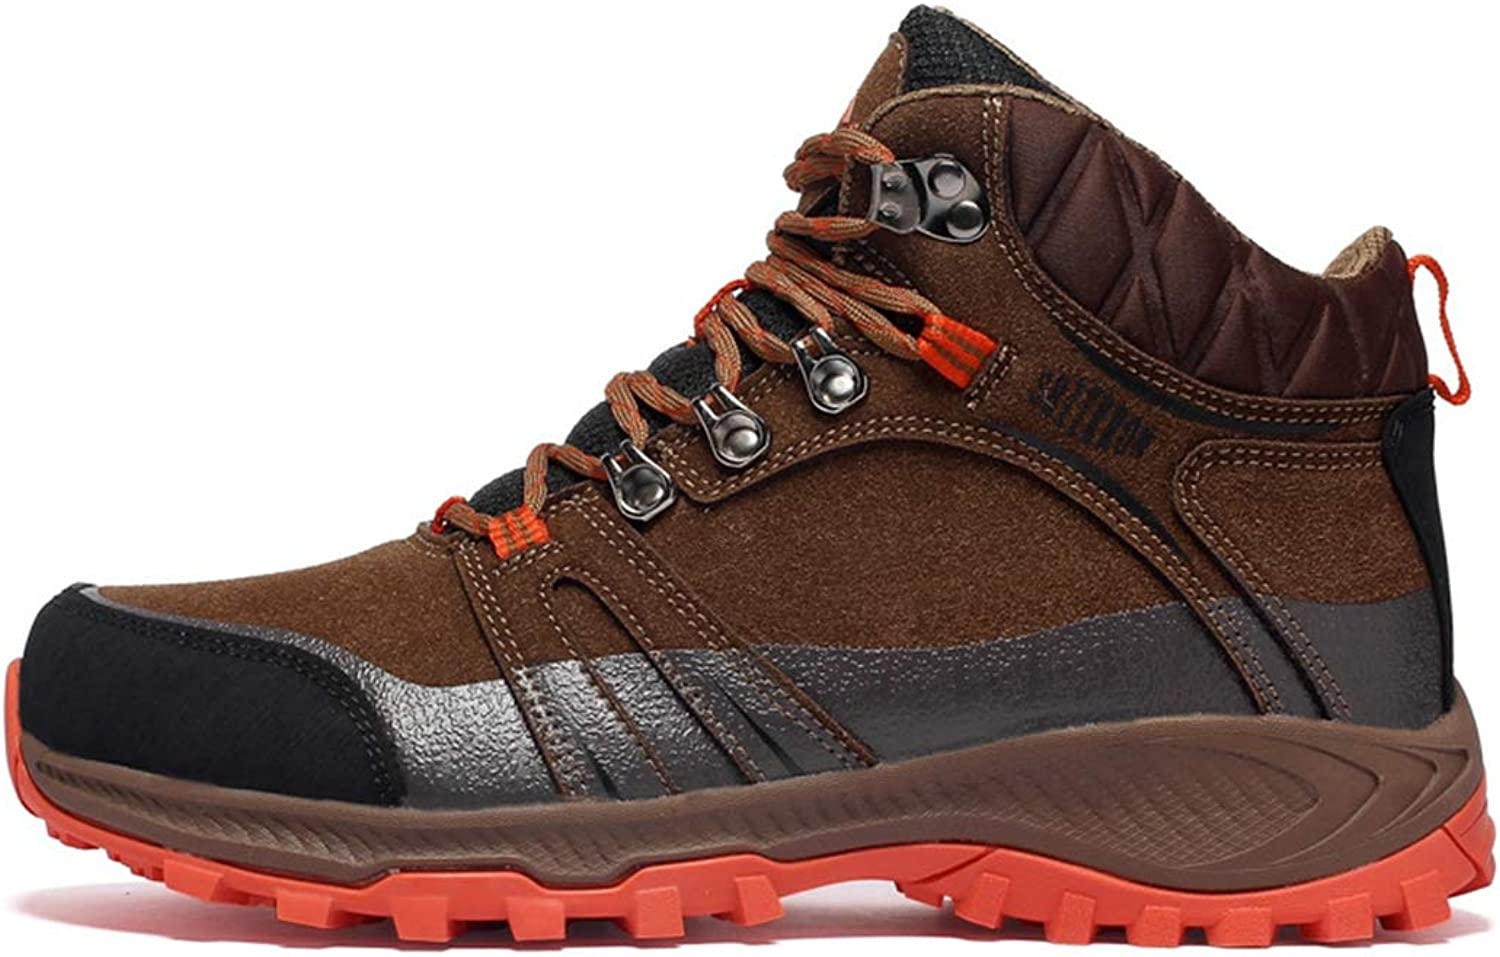 ASO-SLING Waterproof Hiking Boots Mens Womens Outdoor Trail Hiker Non-Slip Trekking Backpacking shoes